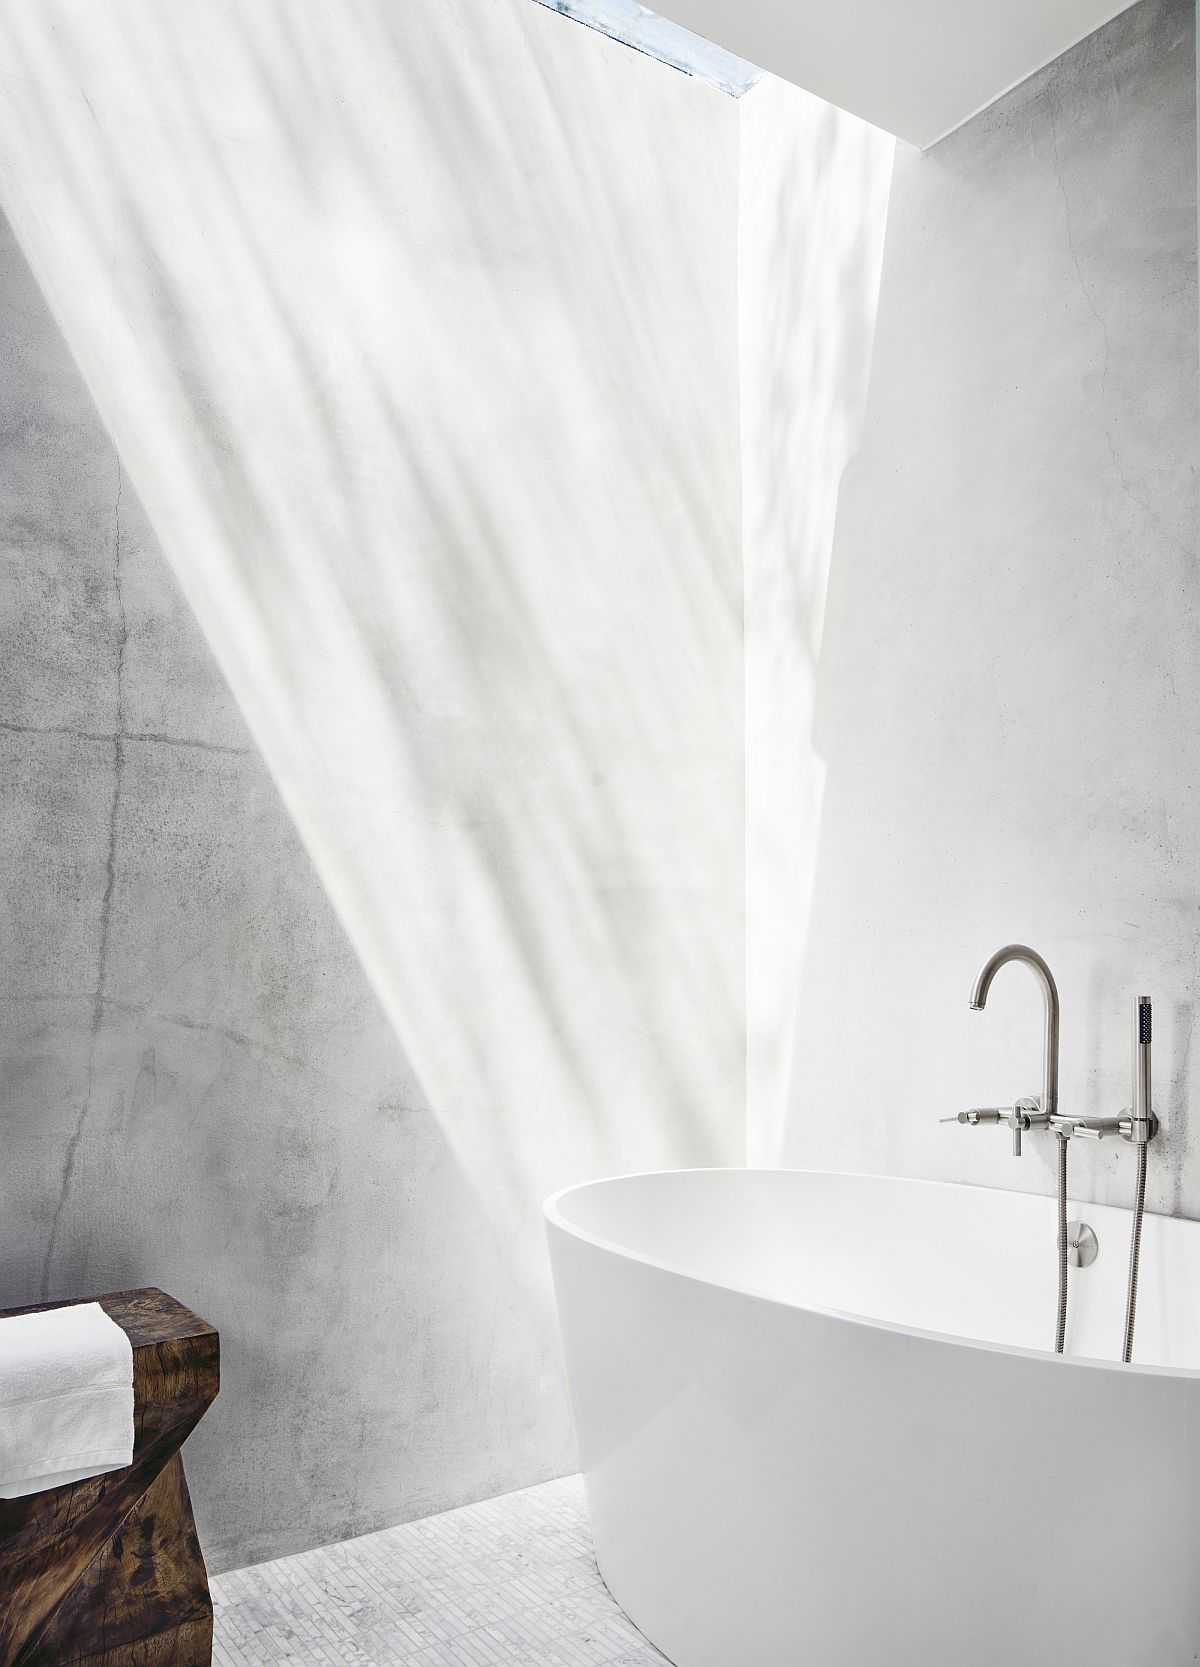 Skylight for the contemporary bathroom in white with standalone bathtub